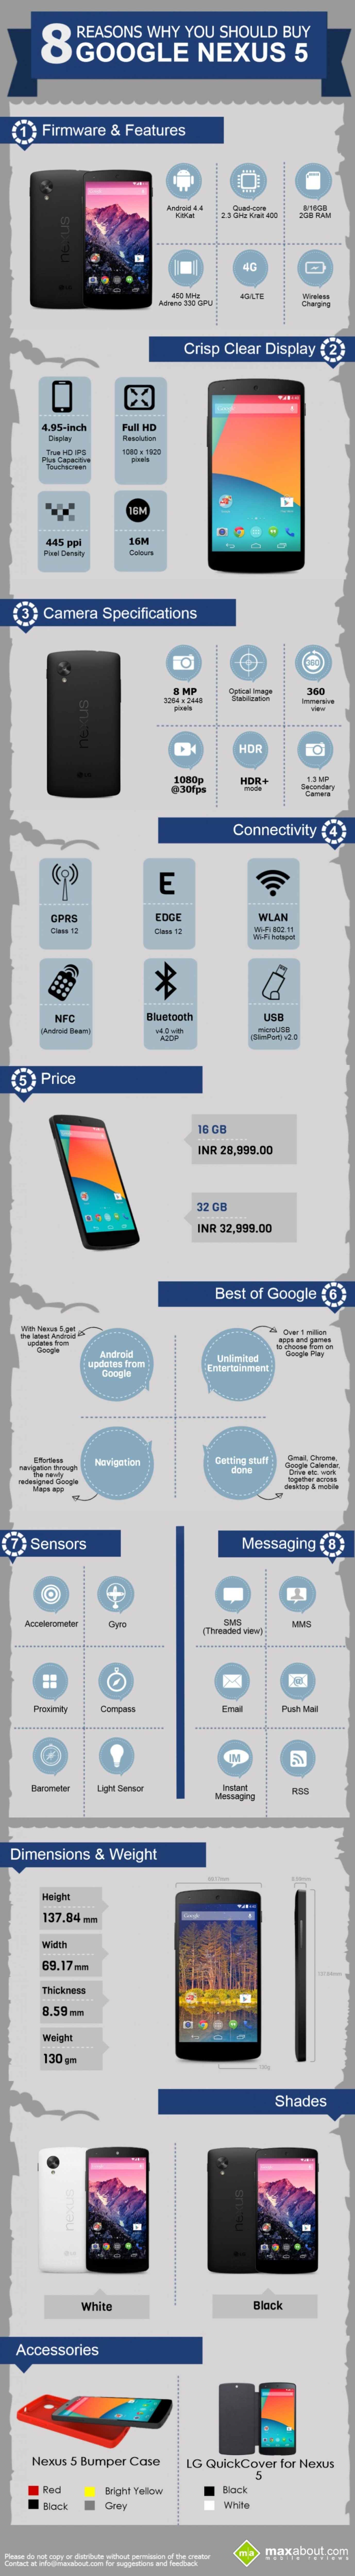 8-reasons-why-you-should-buy-google-nexus-5_5295982e37104_w1500